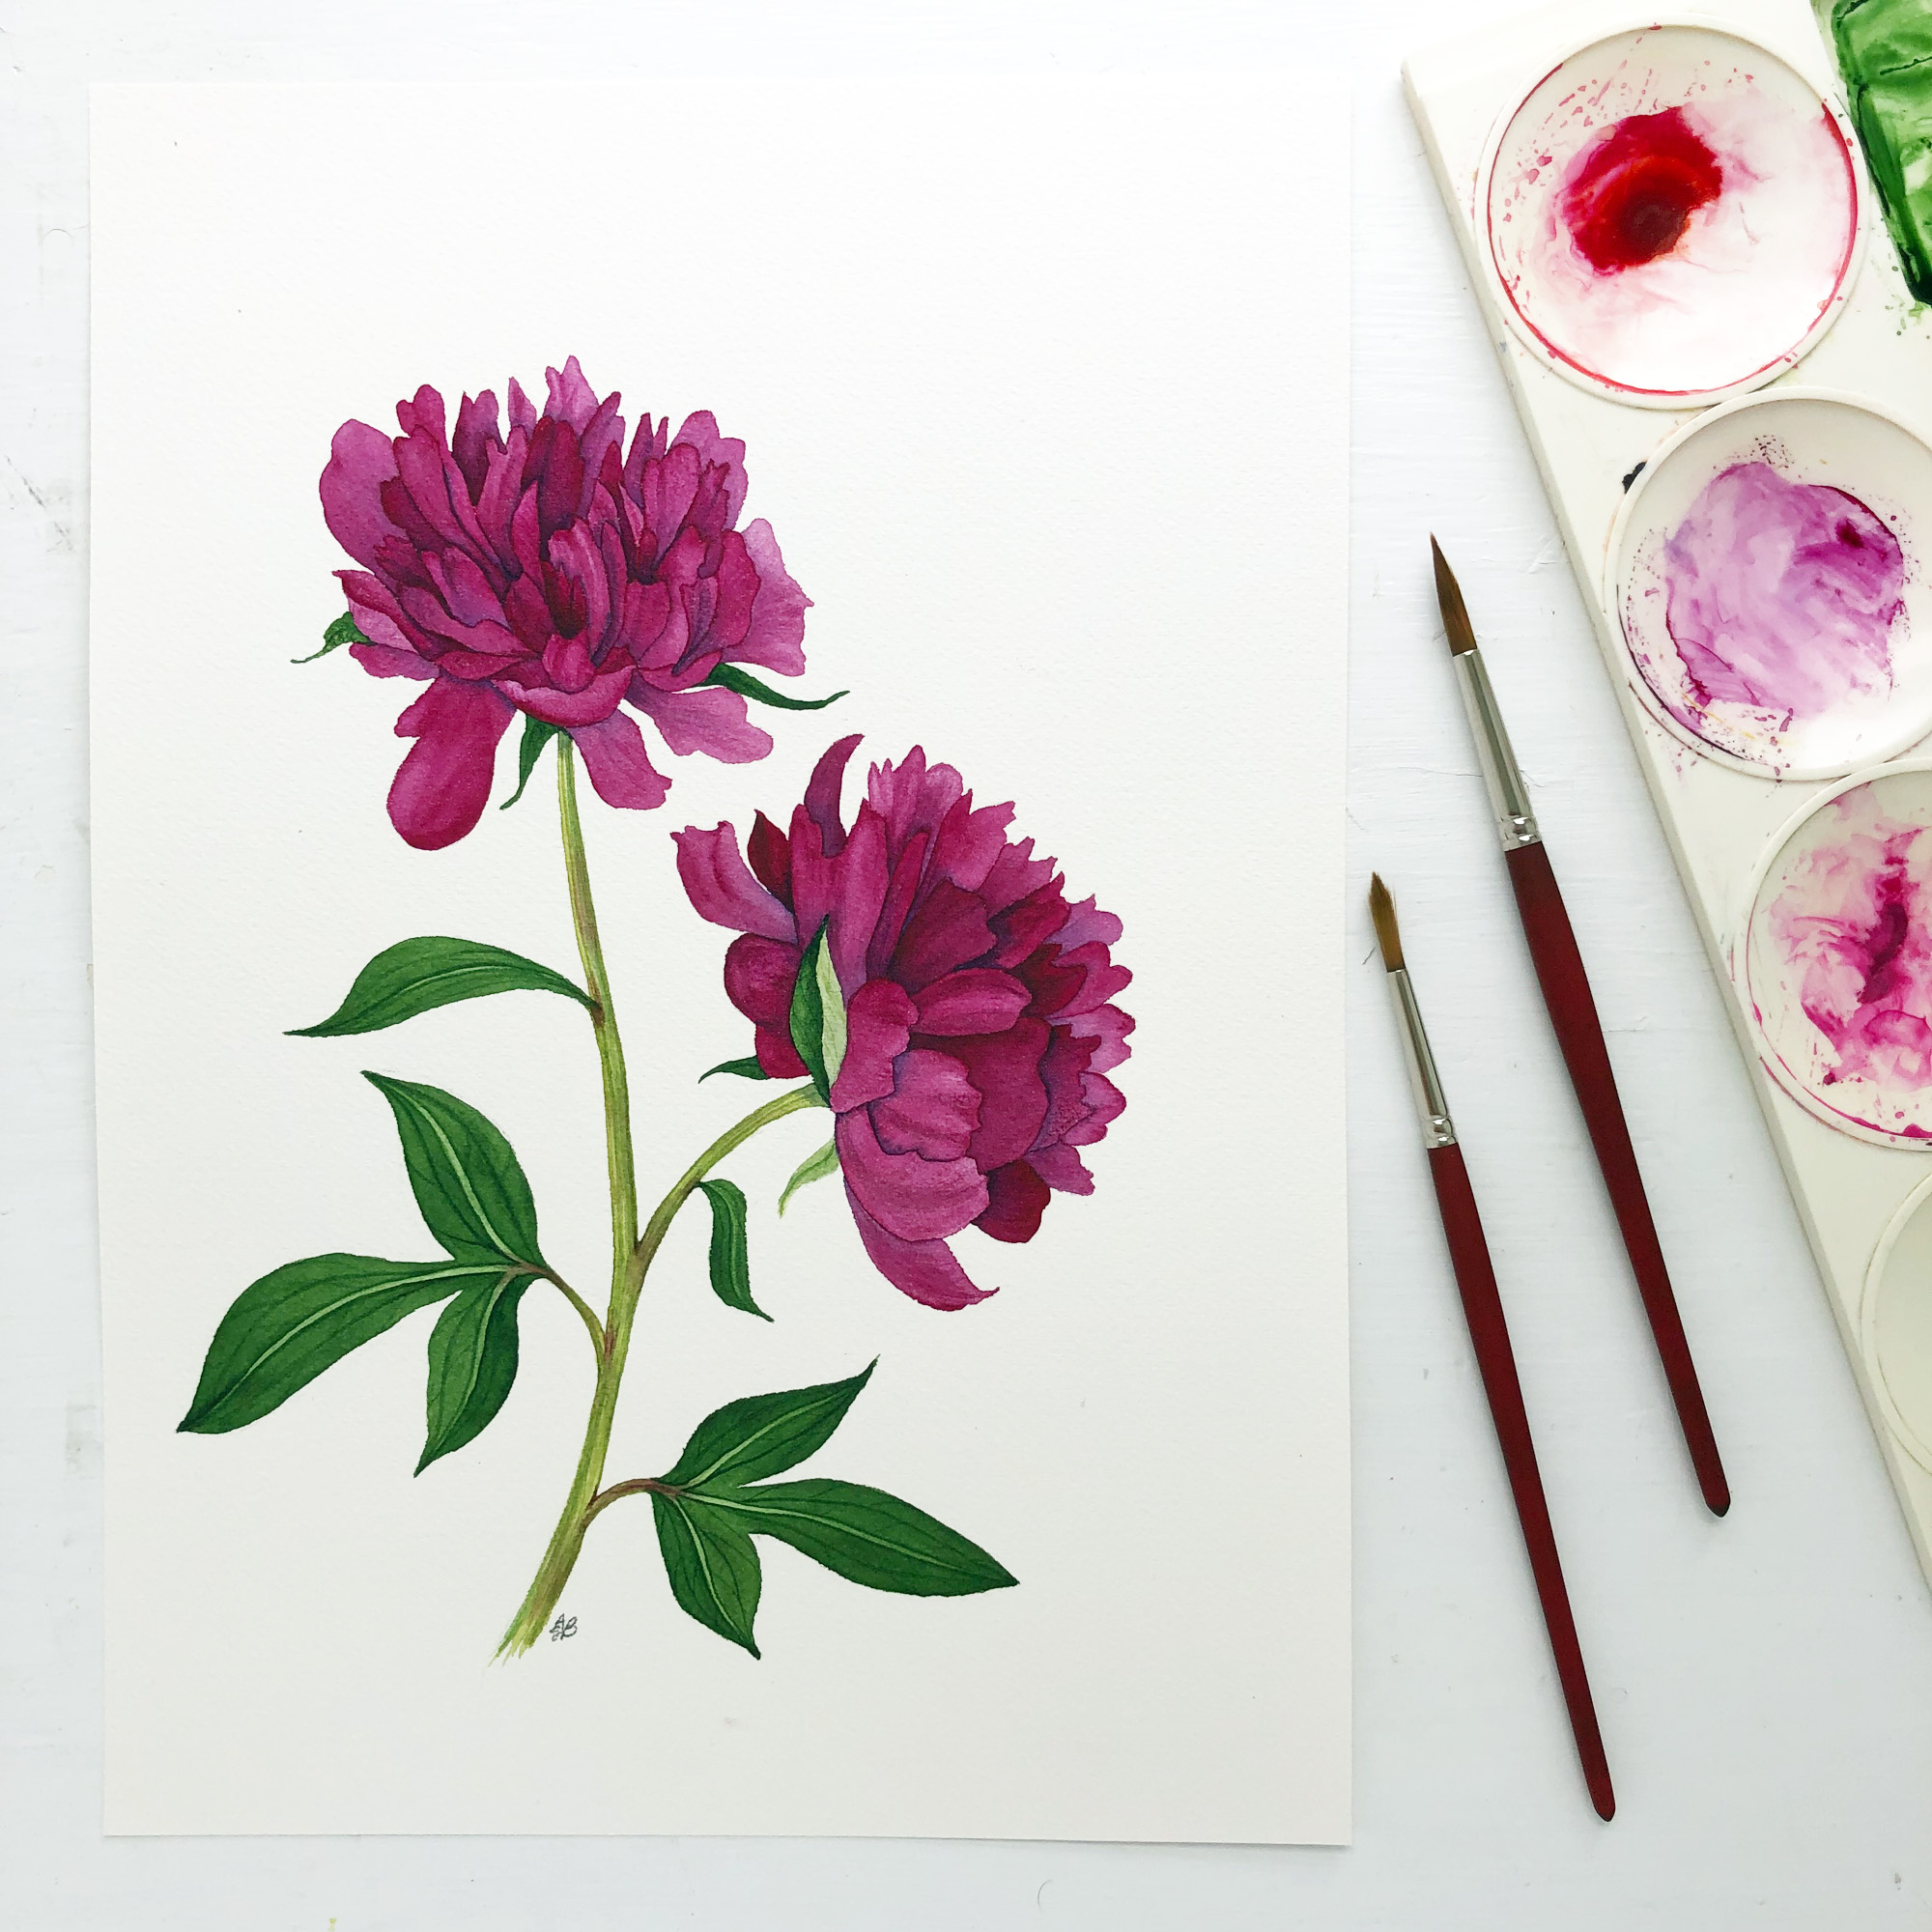 Deep Red Peony Flower Watercolor Painting by Anne Butera